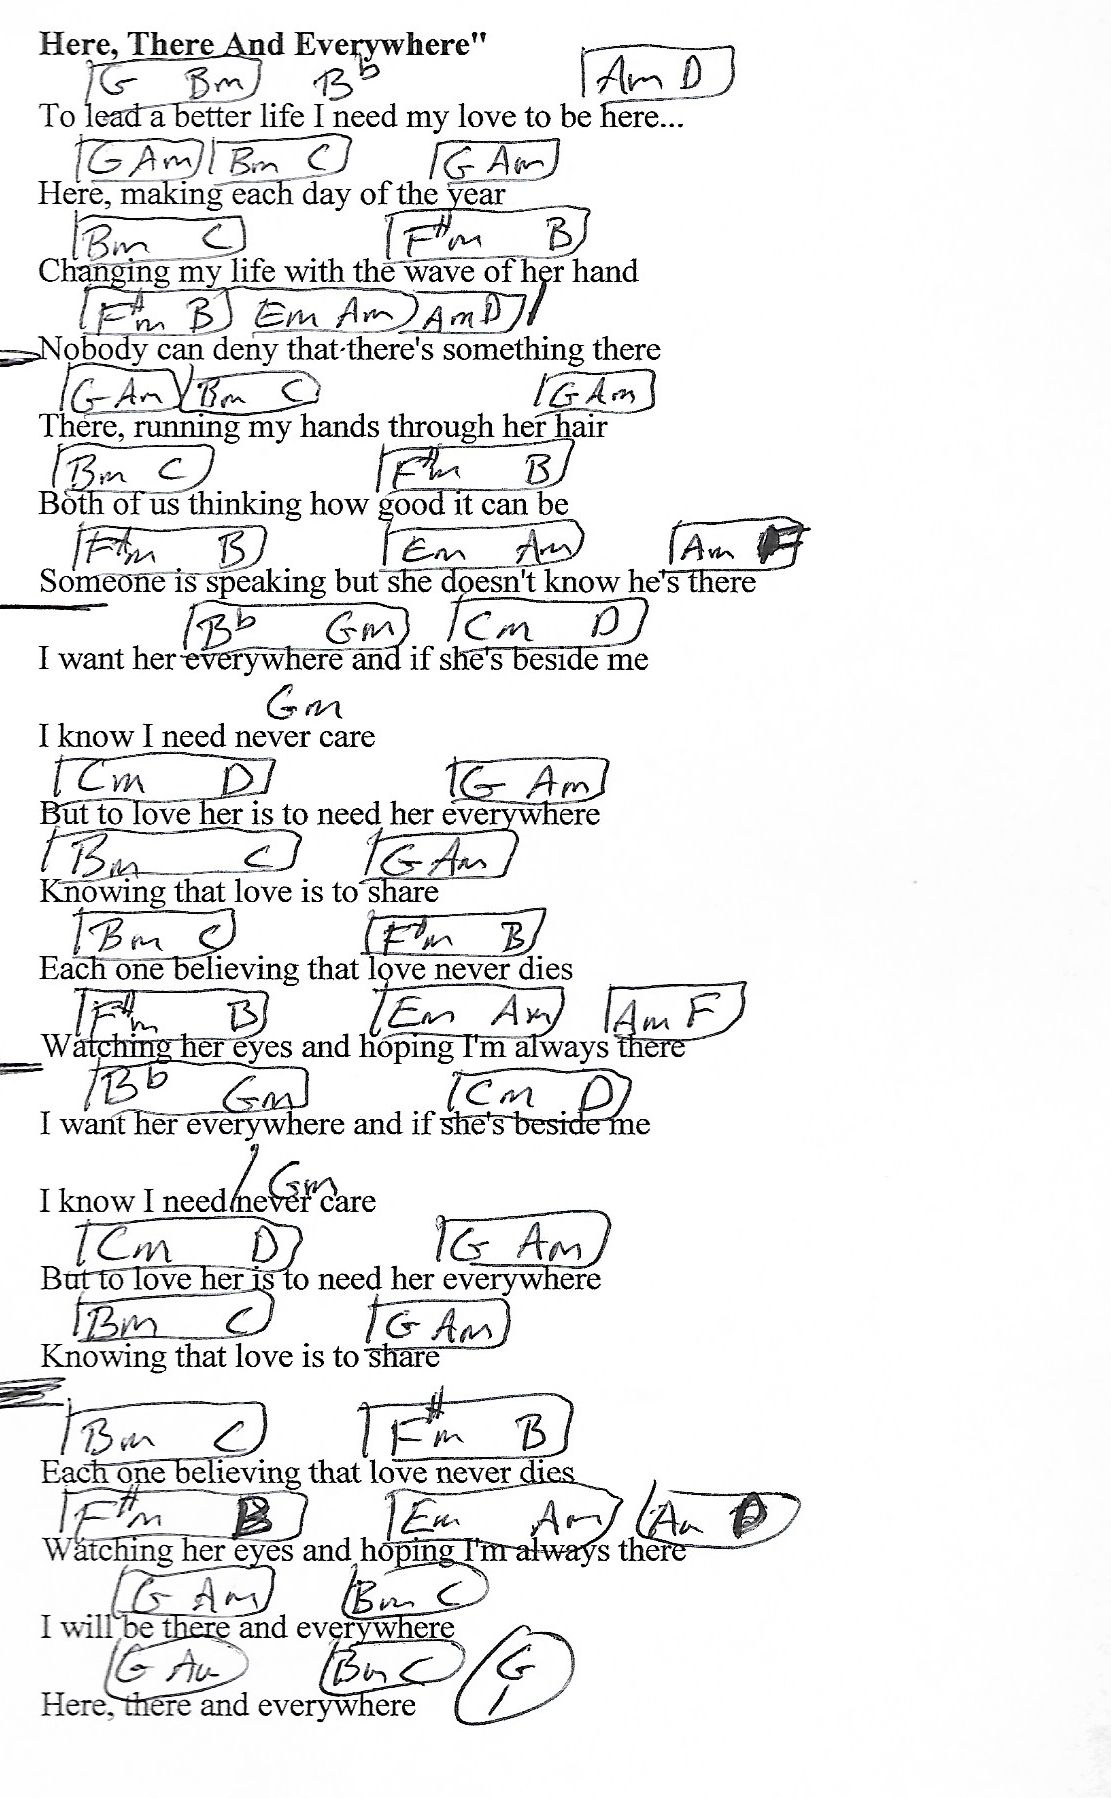 Here, There and Everywhere (Beatles) Guitar Chord Chart